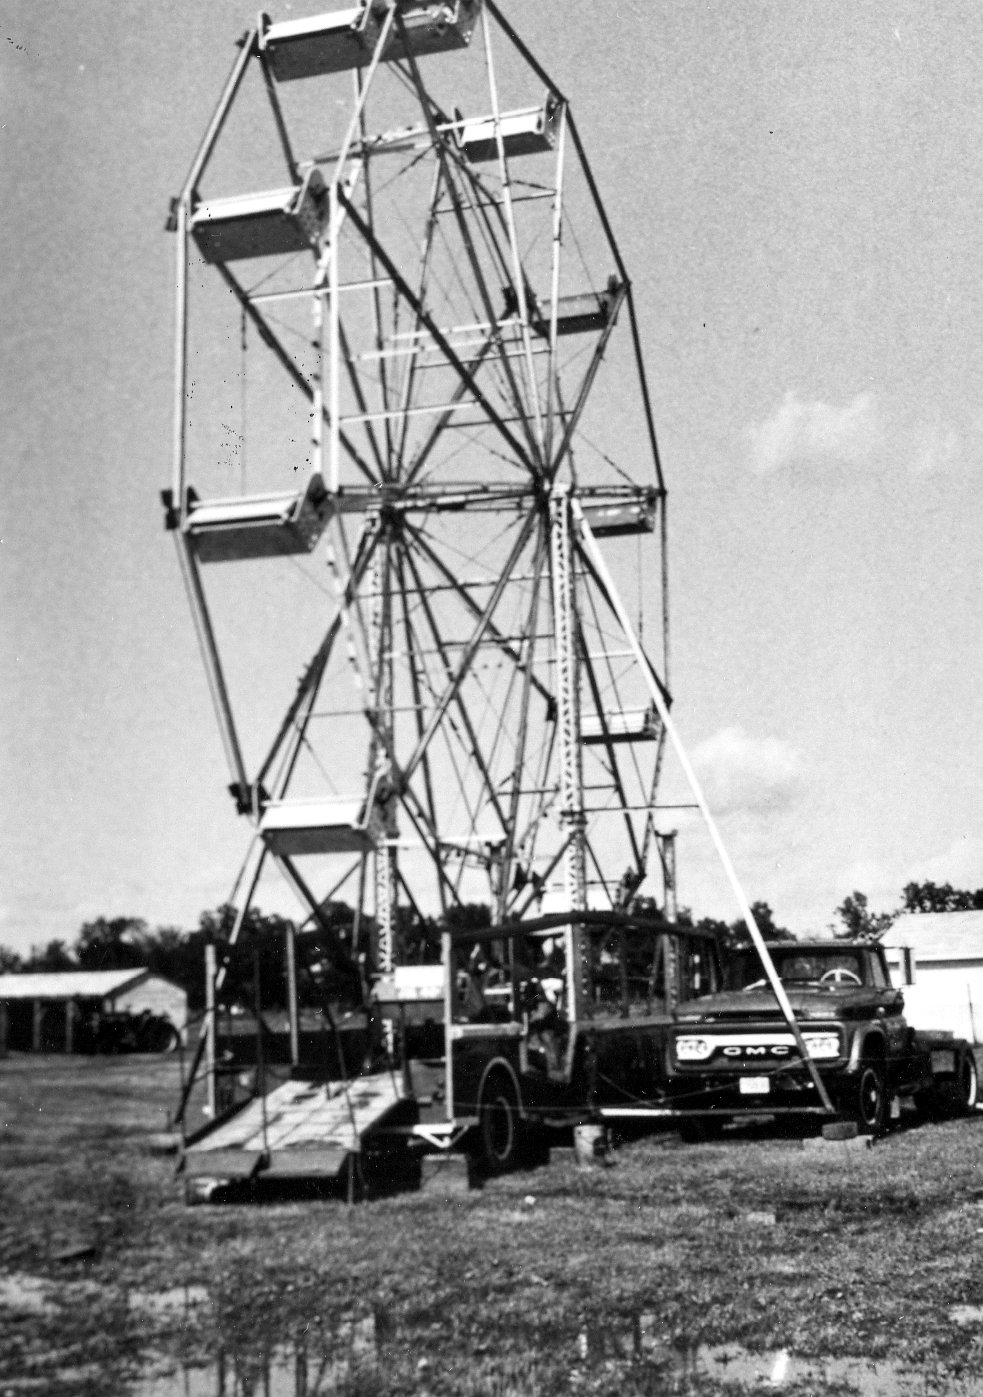 Wondershows owned by Henry Saluk. 44 ft ferris wheel with 24 person capacity